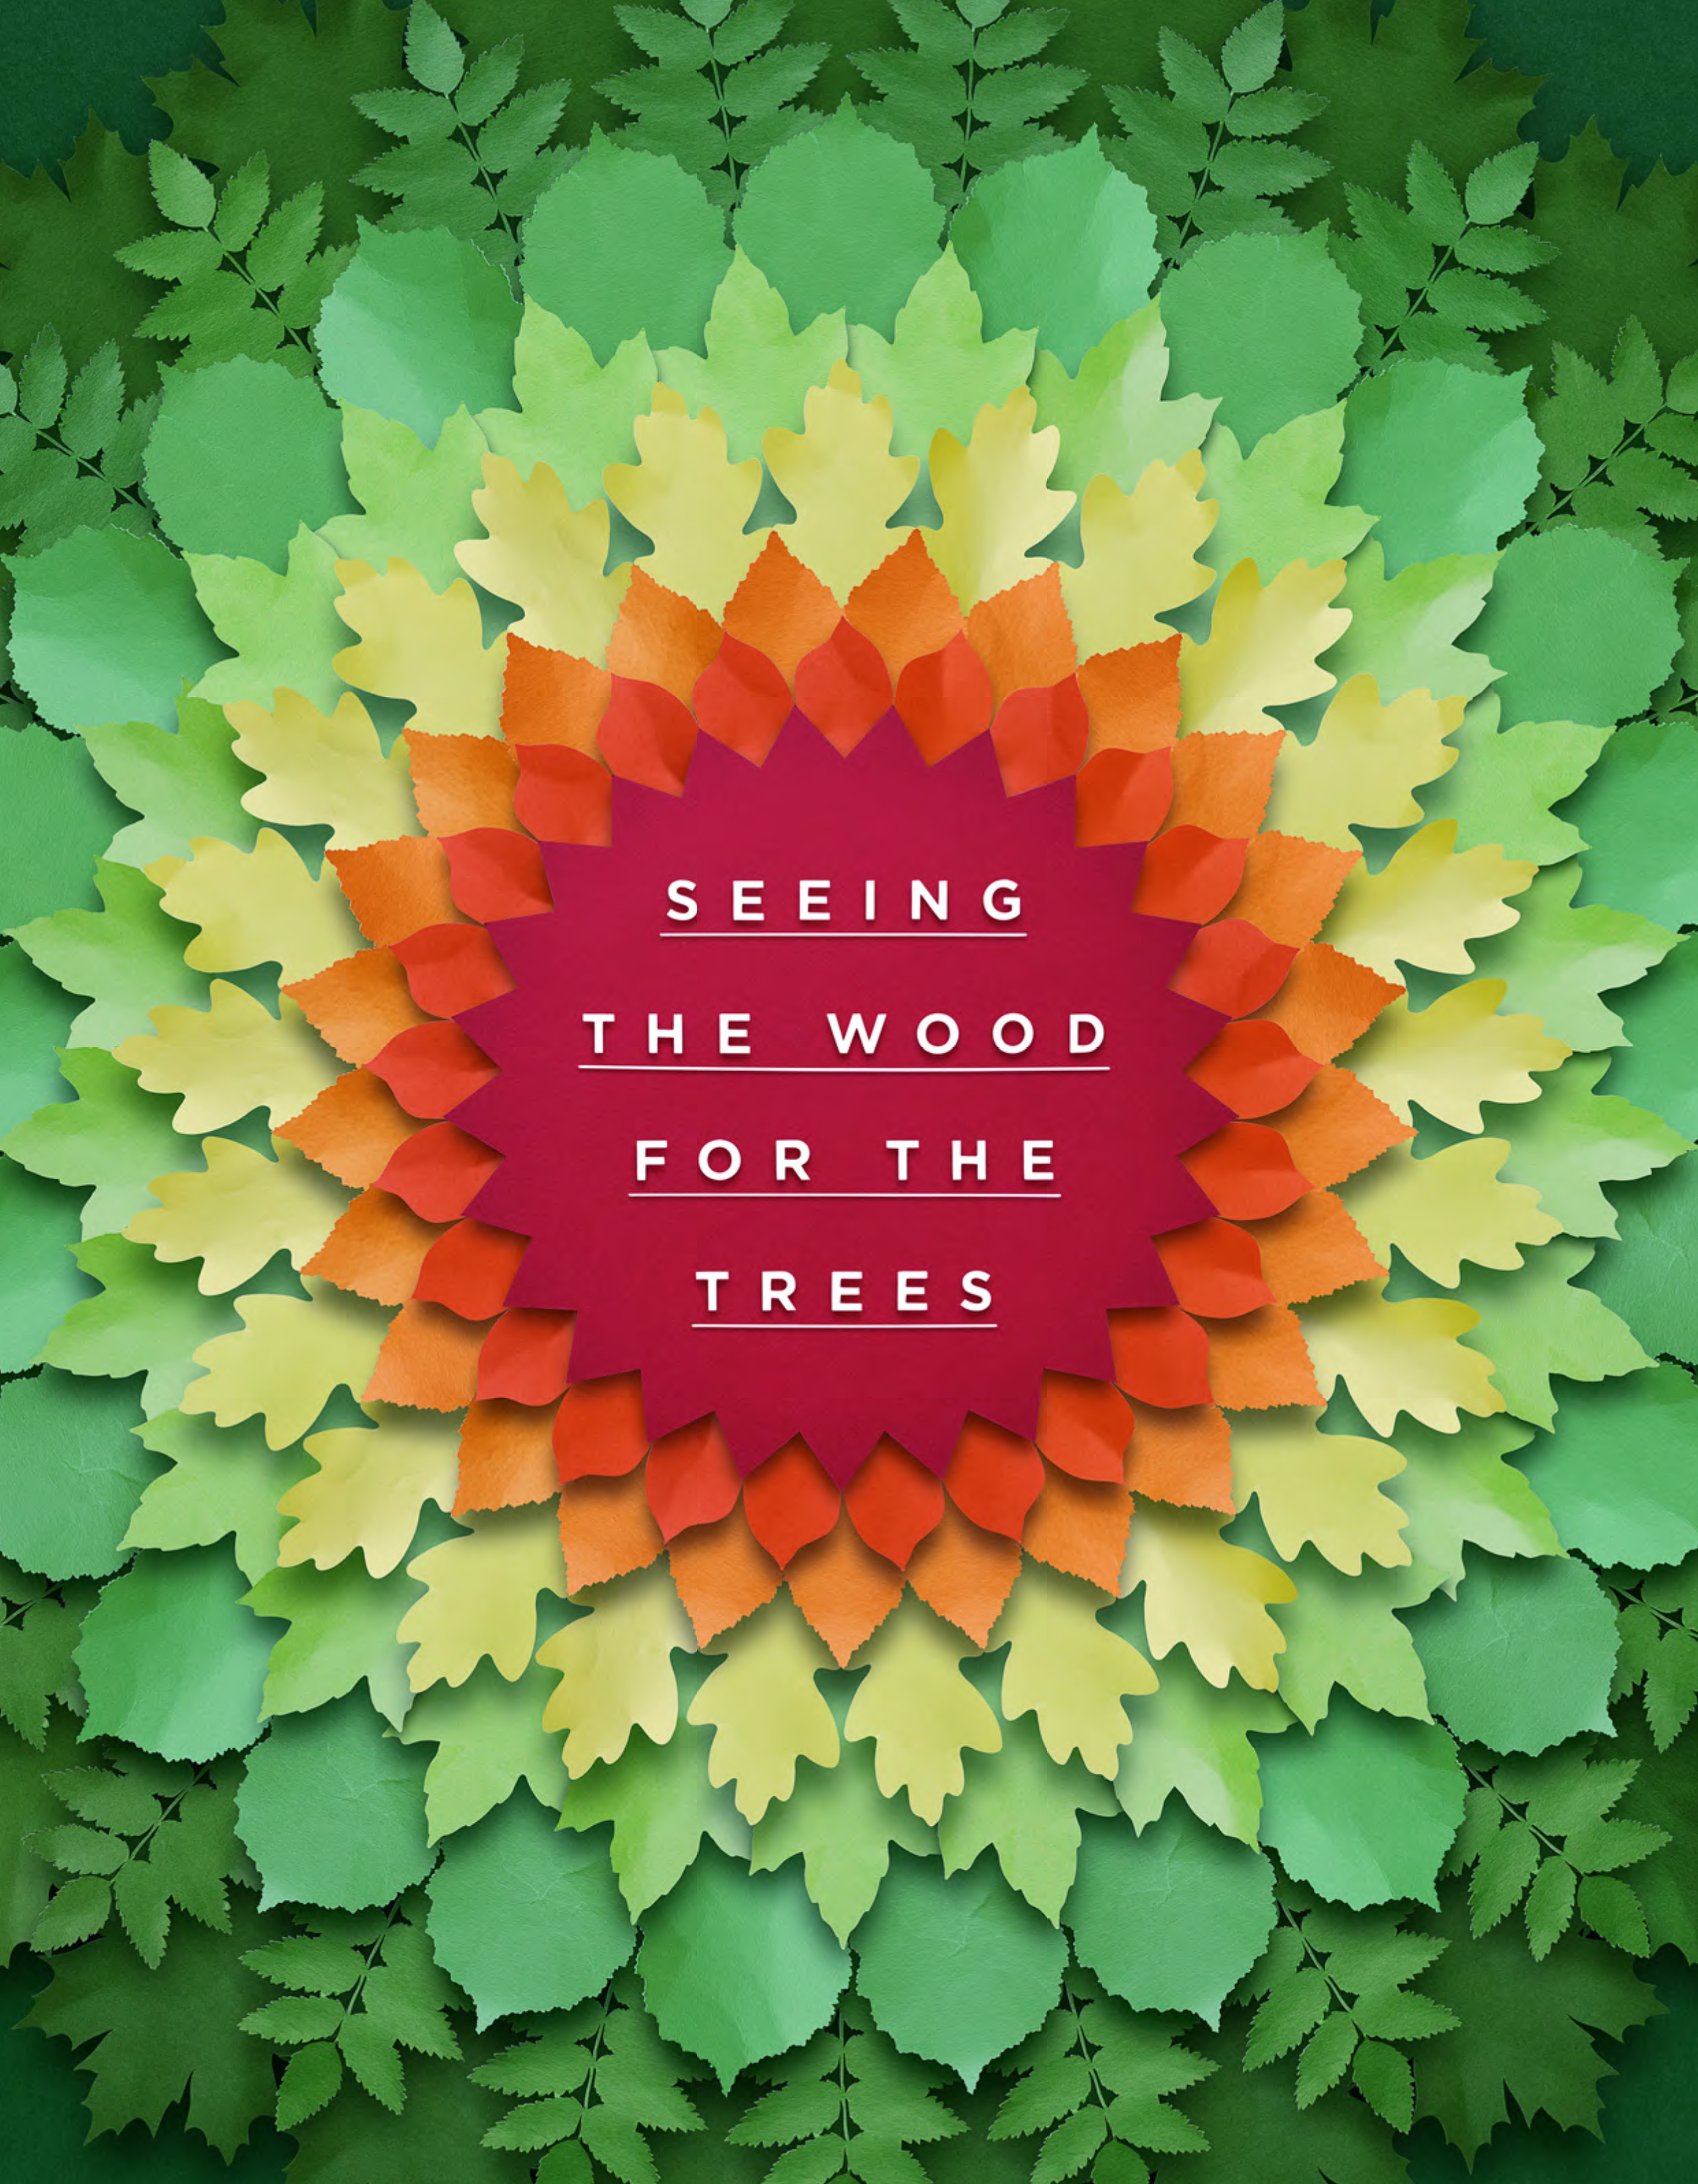 Seeing The Wood For The Trees  for Land Business Spring/Summer 2018